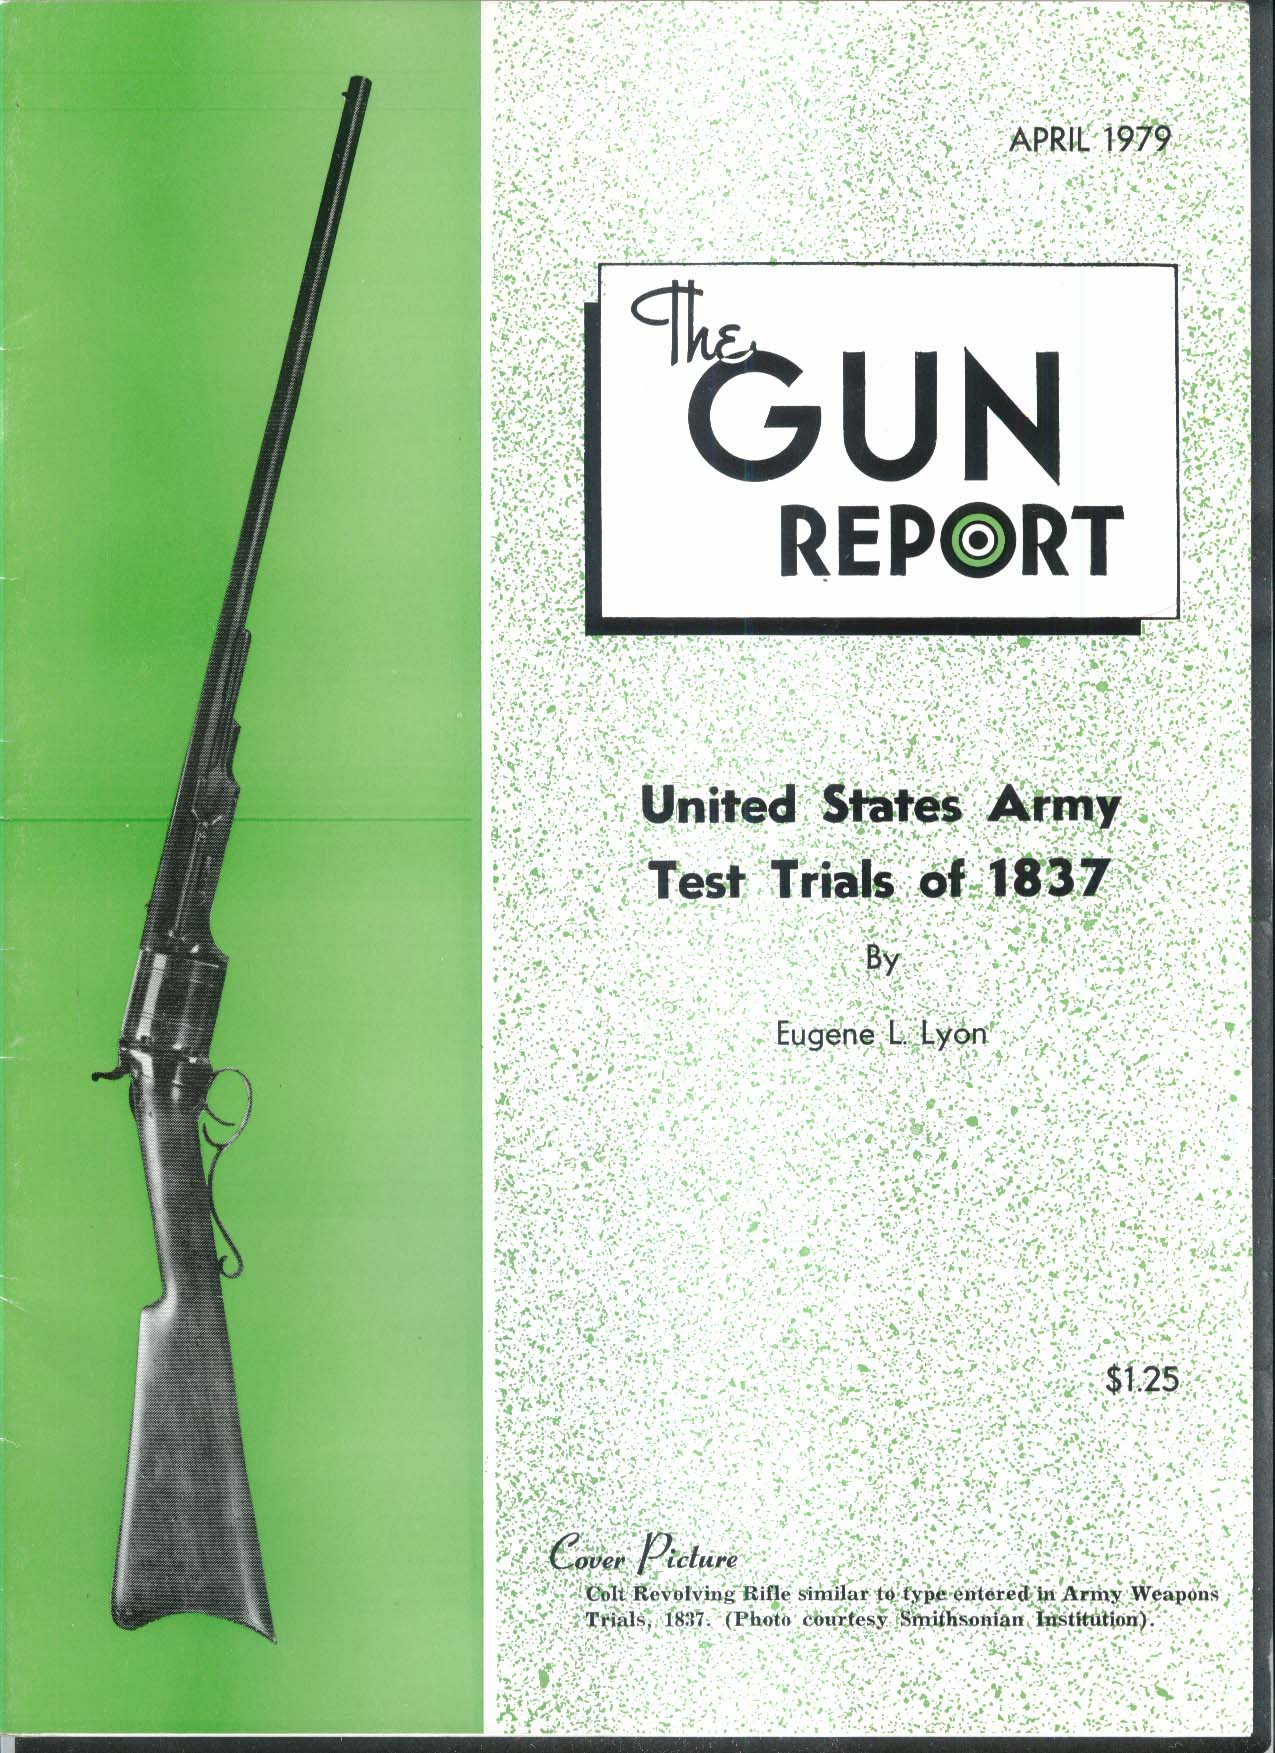 GUN REPORT United States Army Test Trials 1837 Colt Revolving RIfle 4 1979